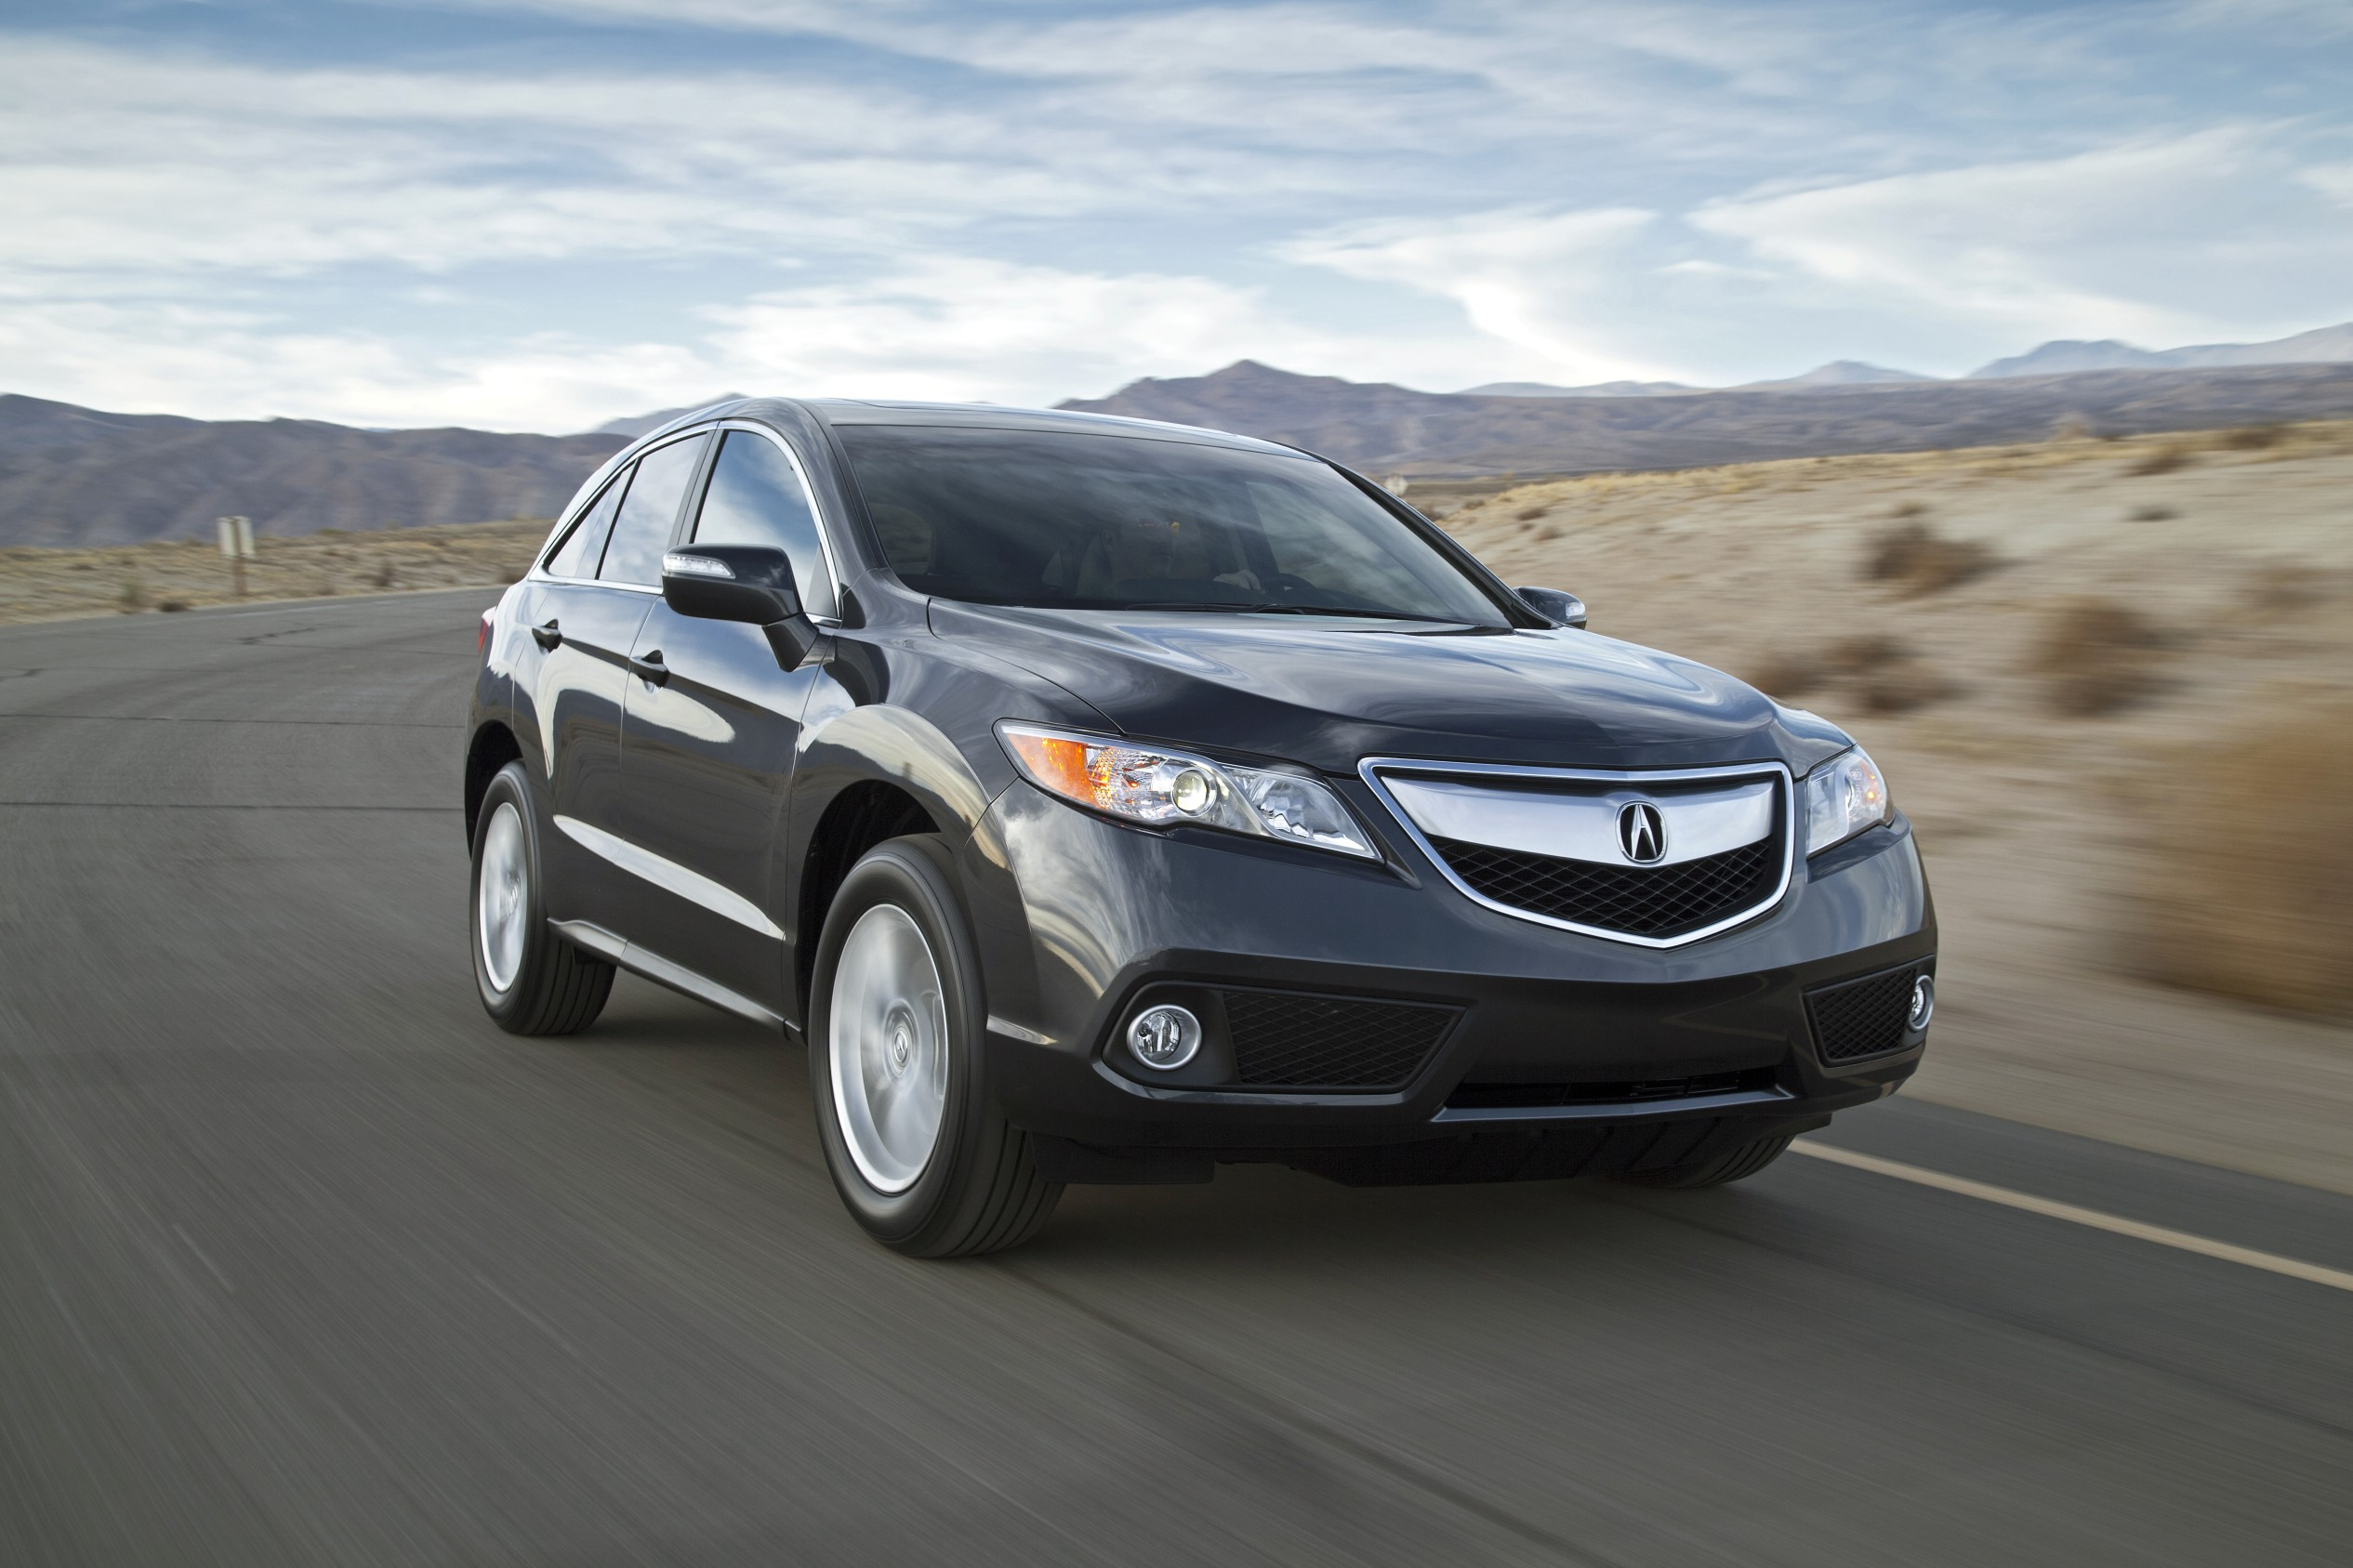 photos articles bestcarmag for rdx informations makes acura sale com